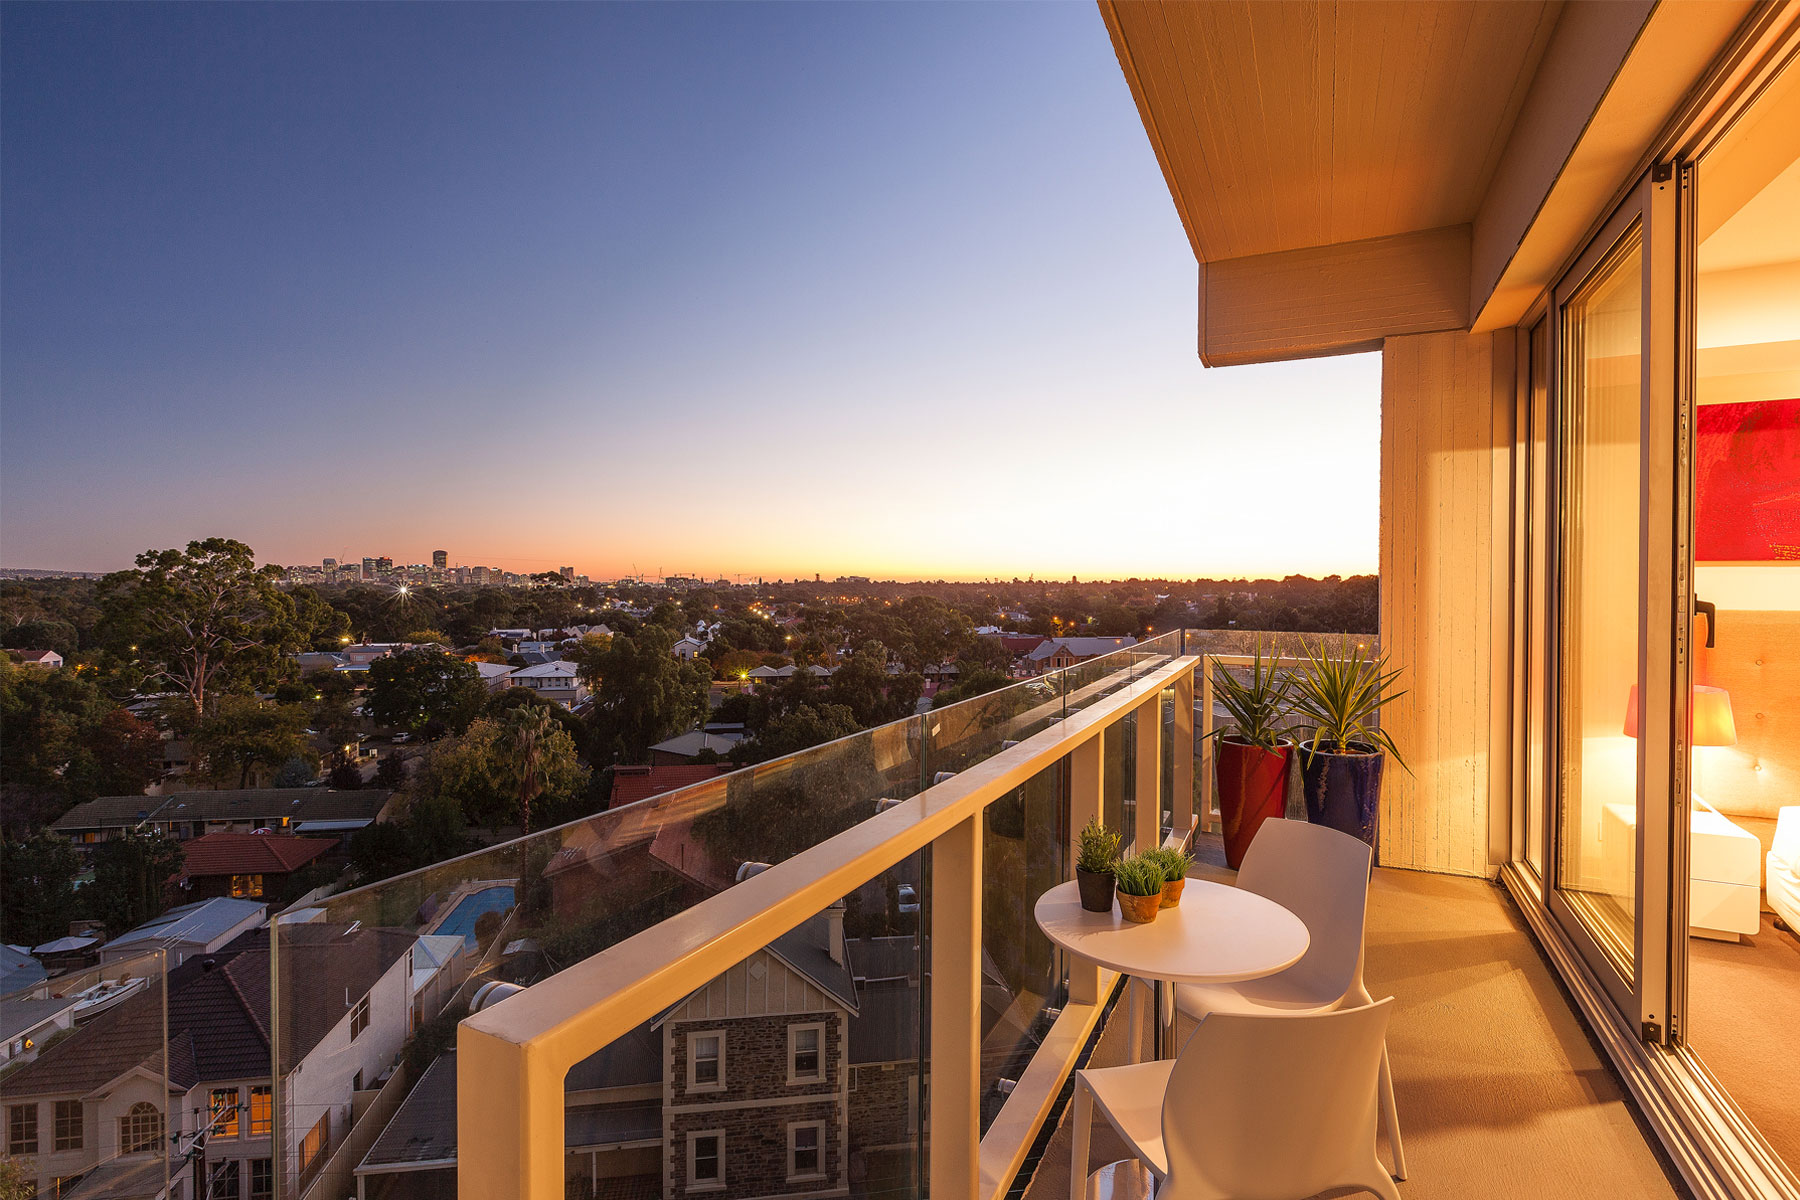 Stunning views of the city of Adelaide greet visitors and residents